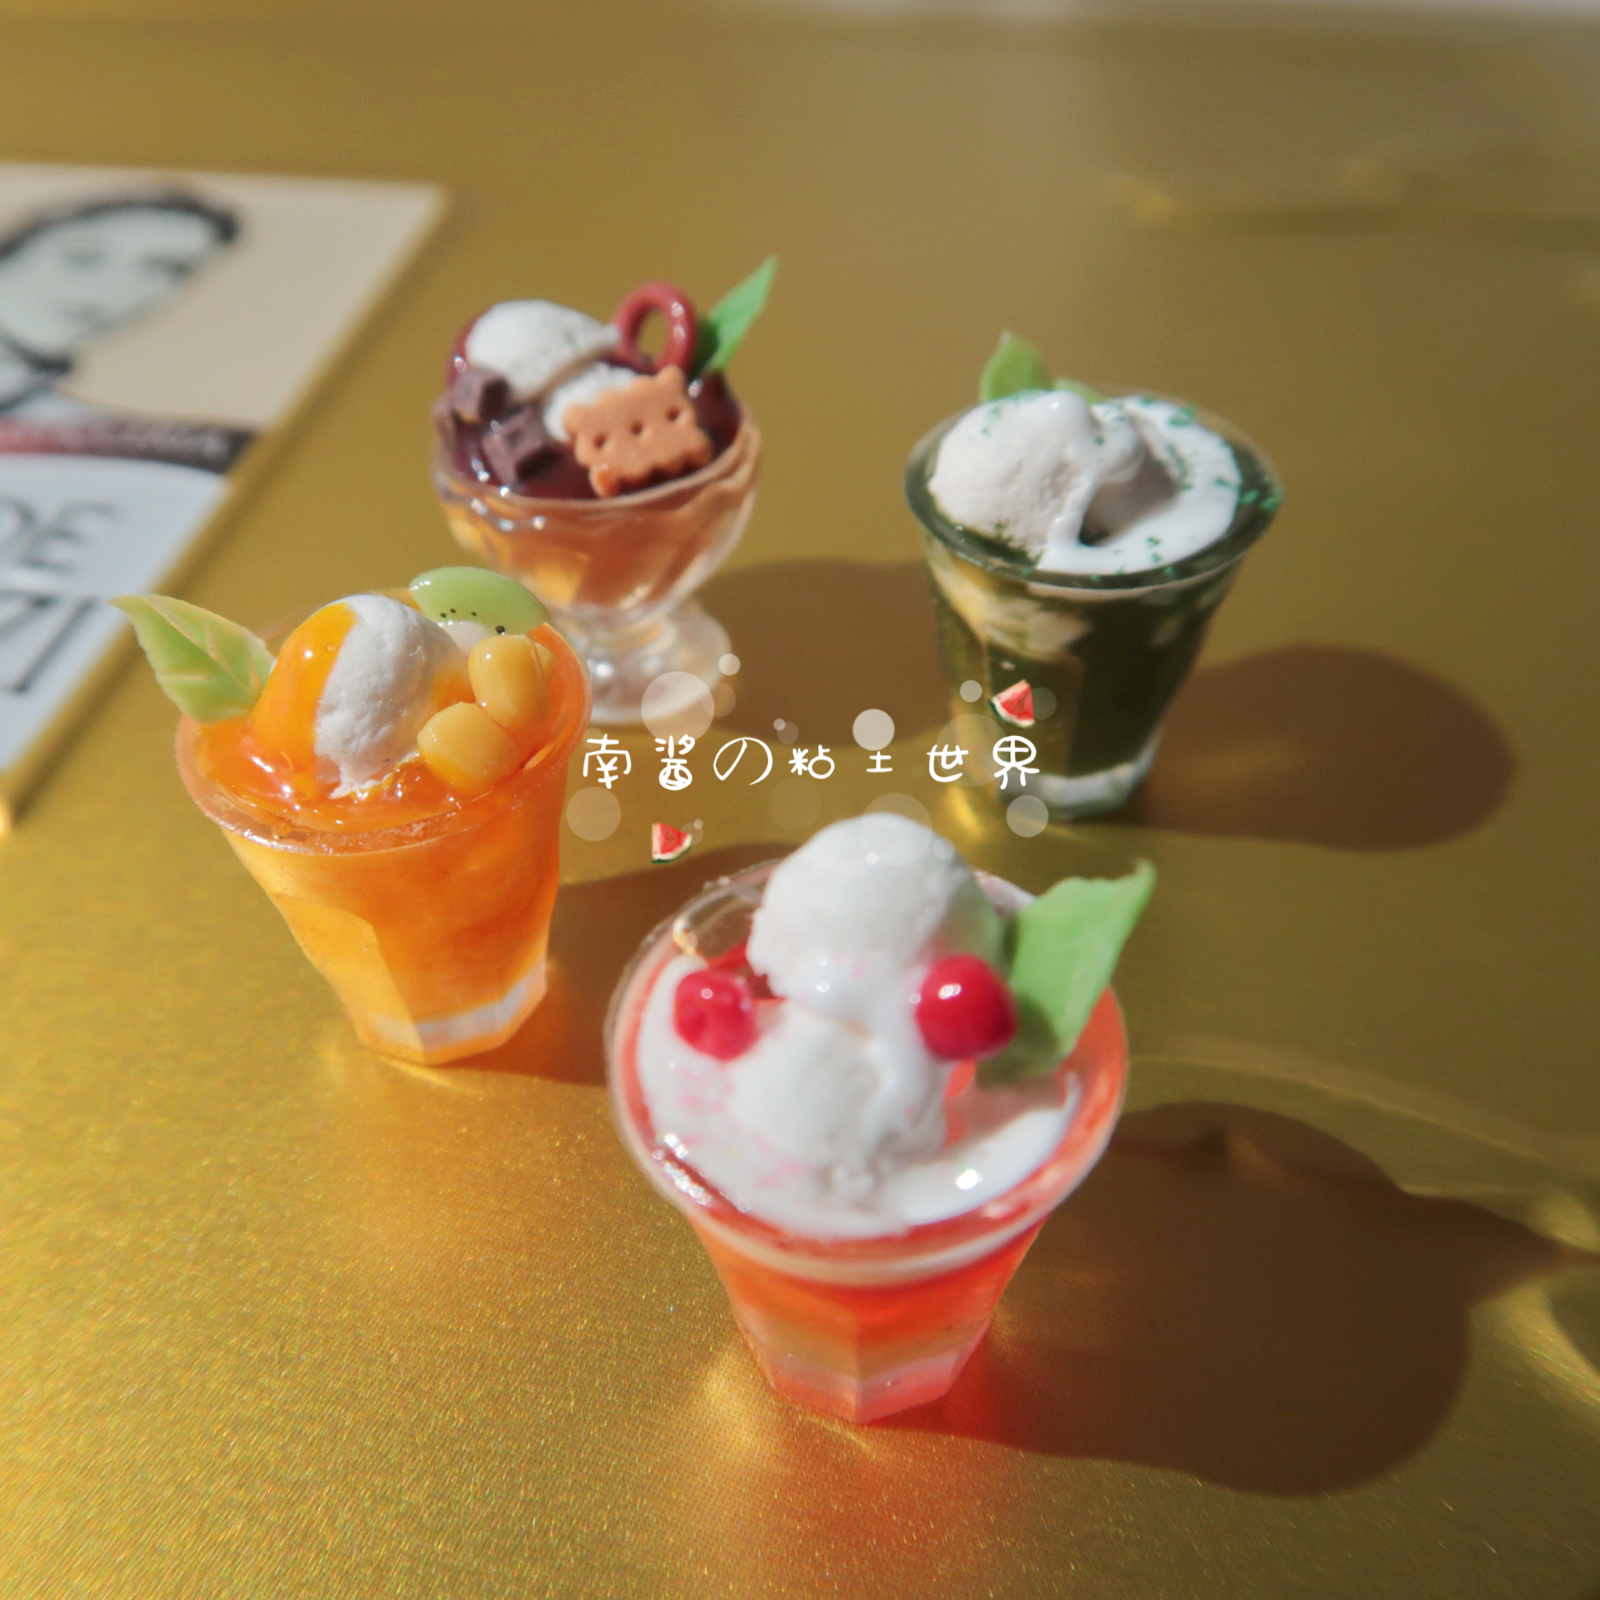 New miniature food game hand made drink cup ob11 Mini scene 12 points Dollhouse Baby House accessories BJD